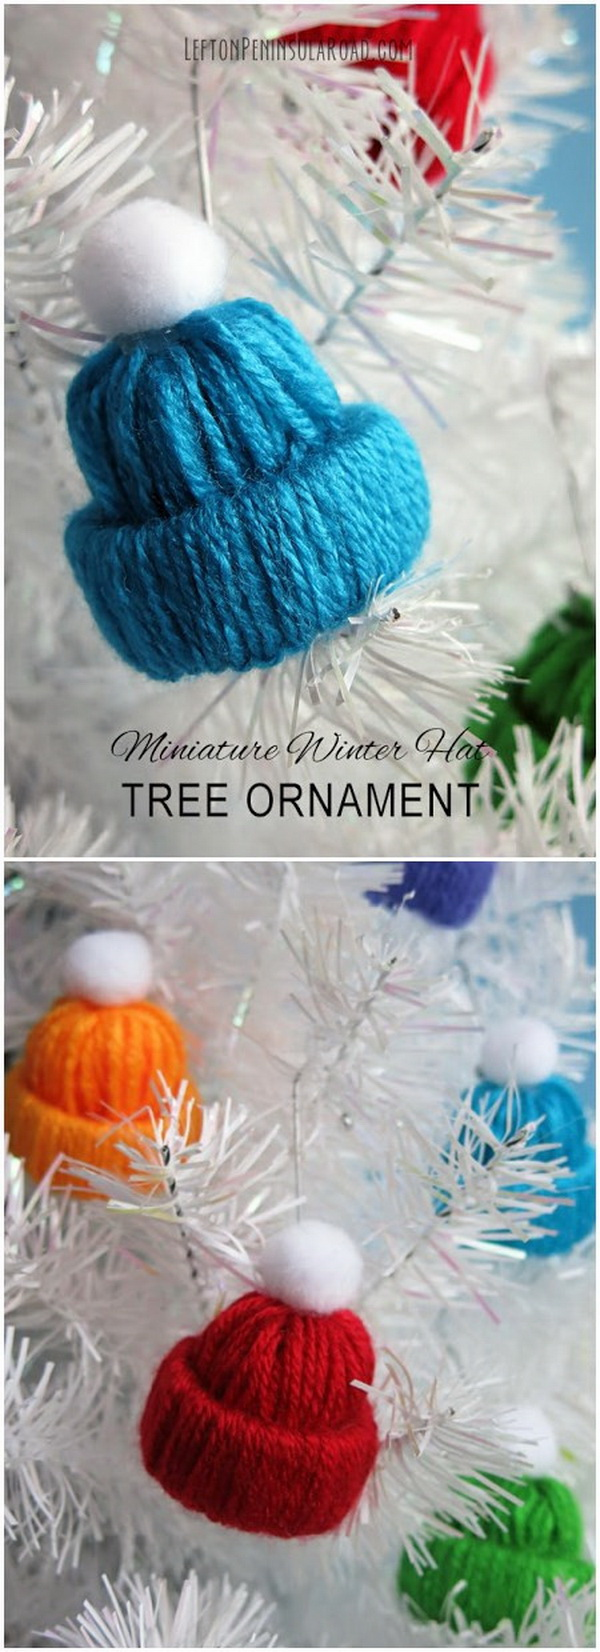 Miniature Winter Yarn Hat Tree Ornaments. These miniature winter hats look so pretty whether hung on the Christmas tree, topping a package, or strung together to make a winter garland! A perfect winter craft project for the whole family to make!